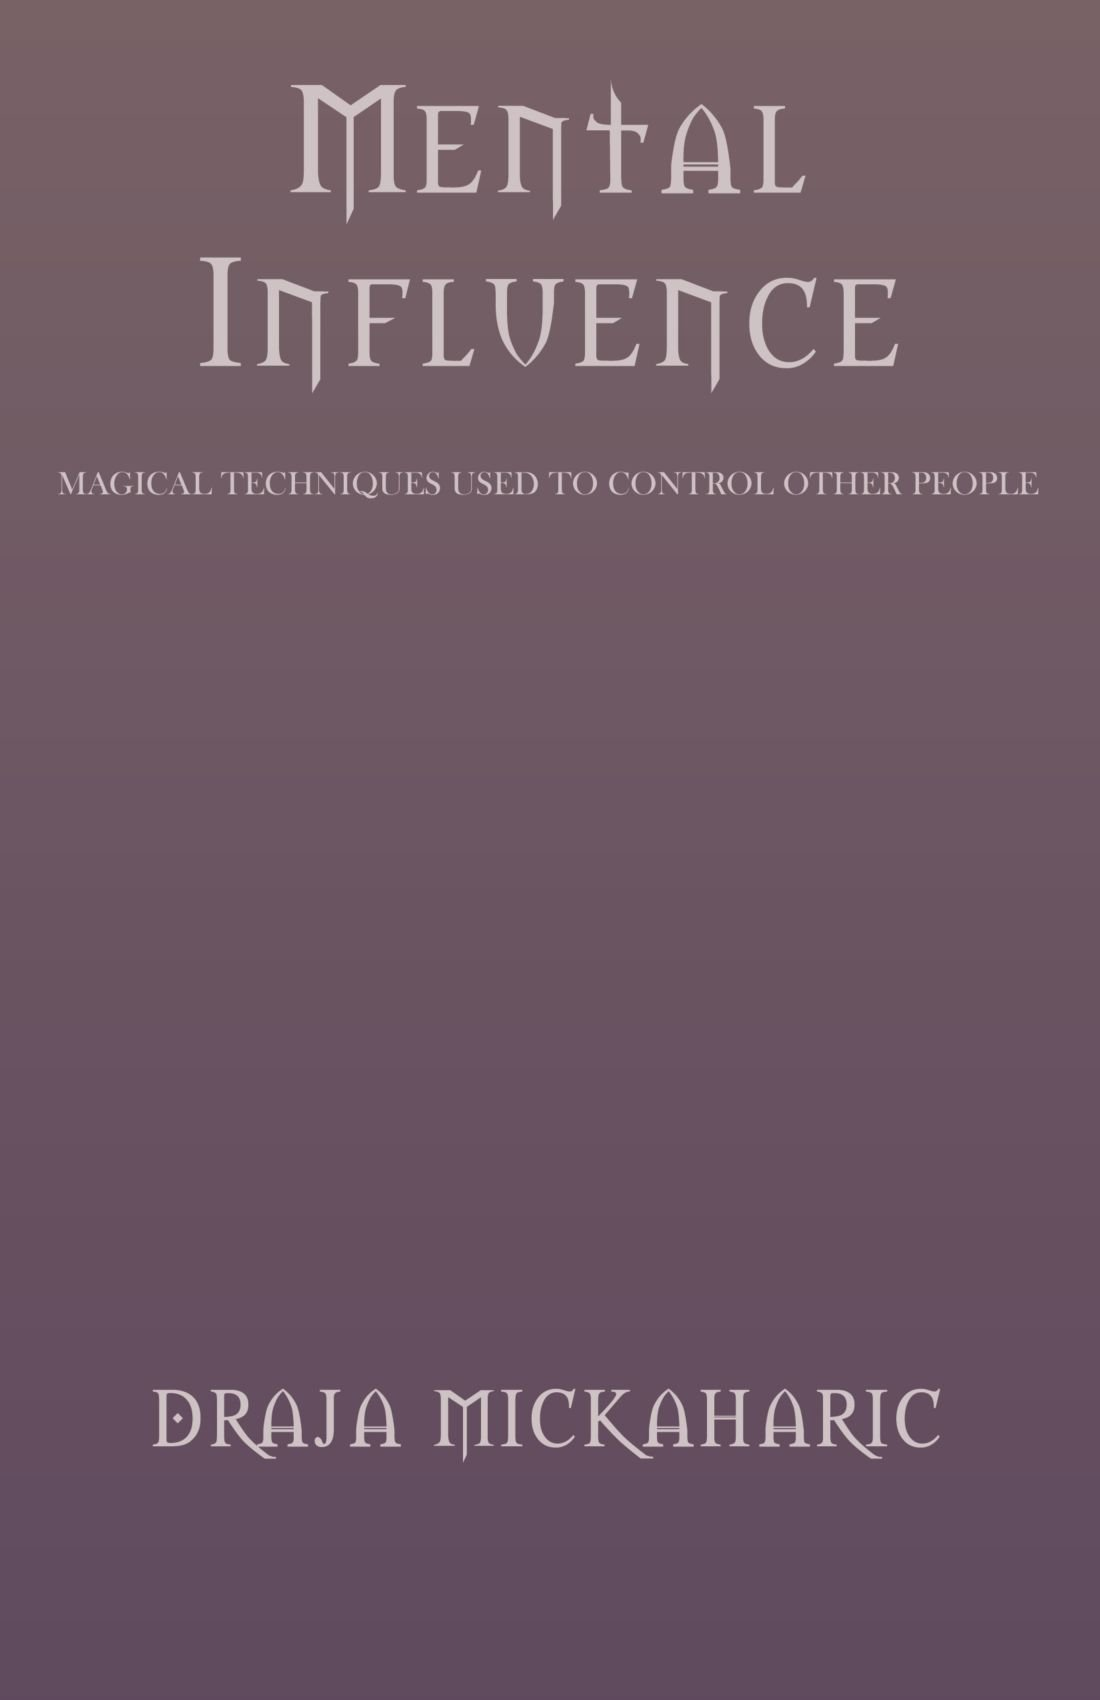 Download Mental Influence: Magical Techniques Used to Control Other People ebook